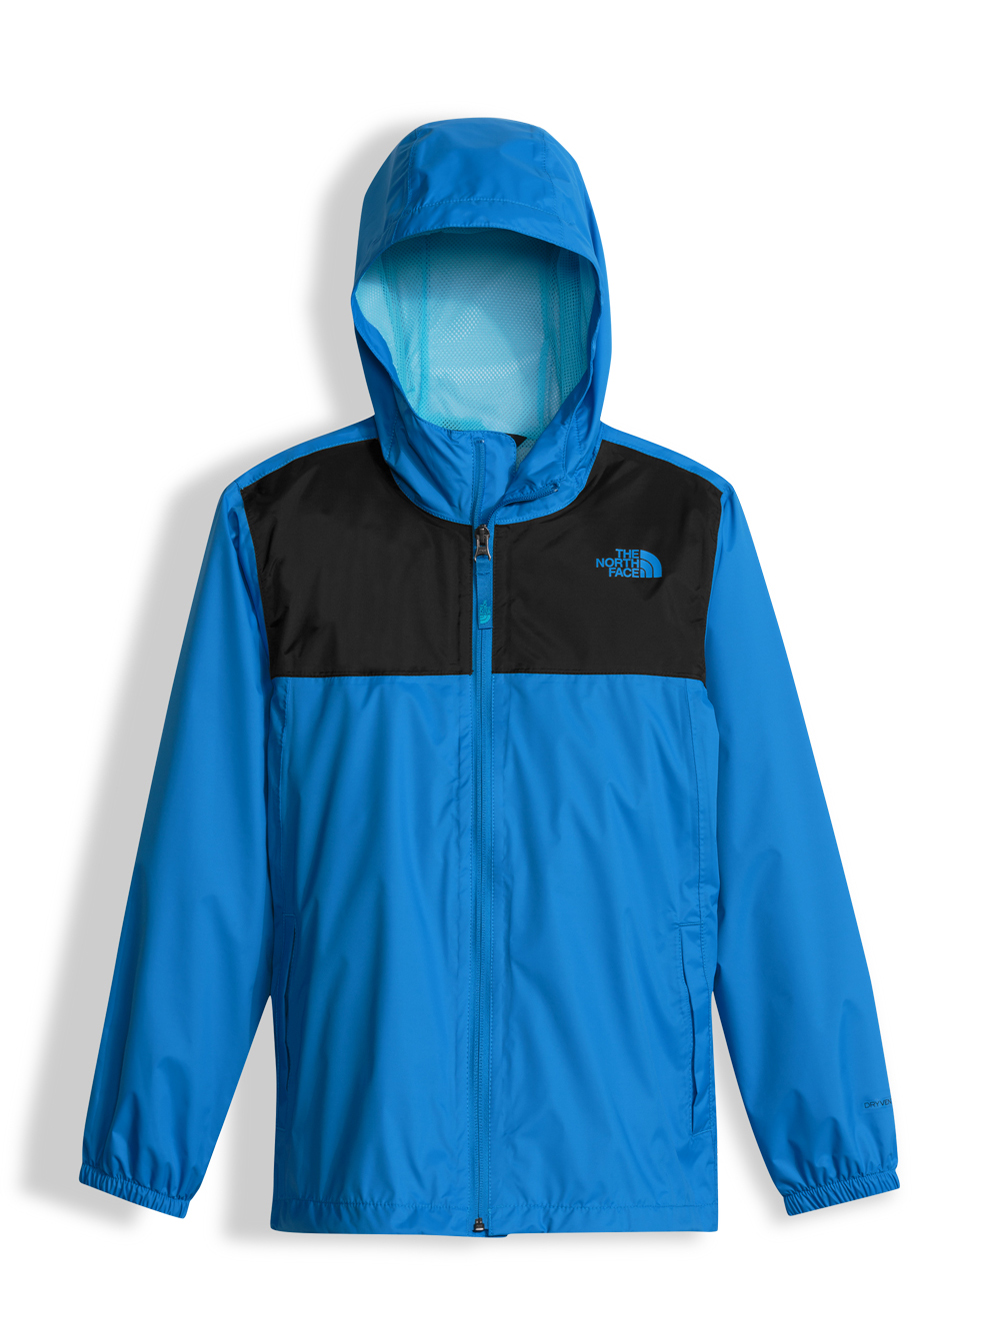 The North Face Big Boys' Zipline Rain Jacket (Sizes S - XL) - clear lake blue, s/7-8